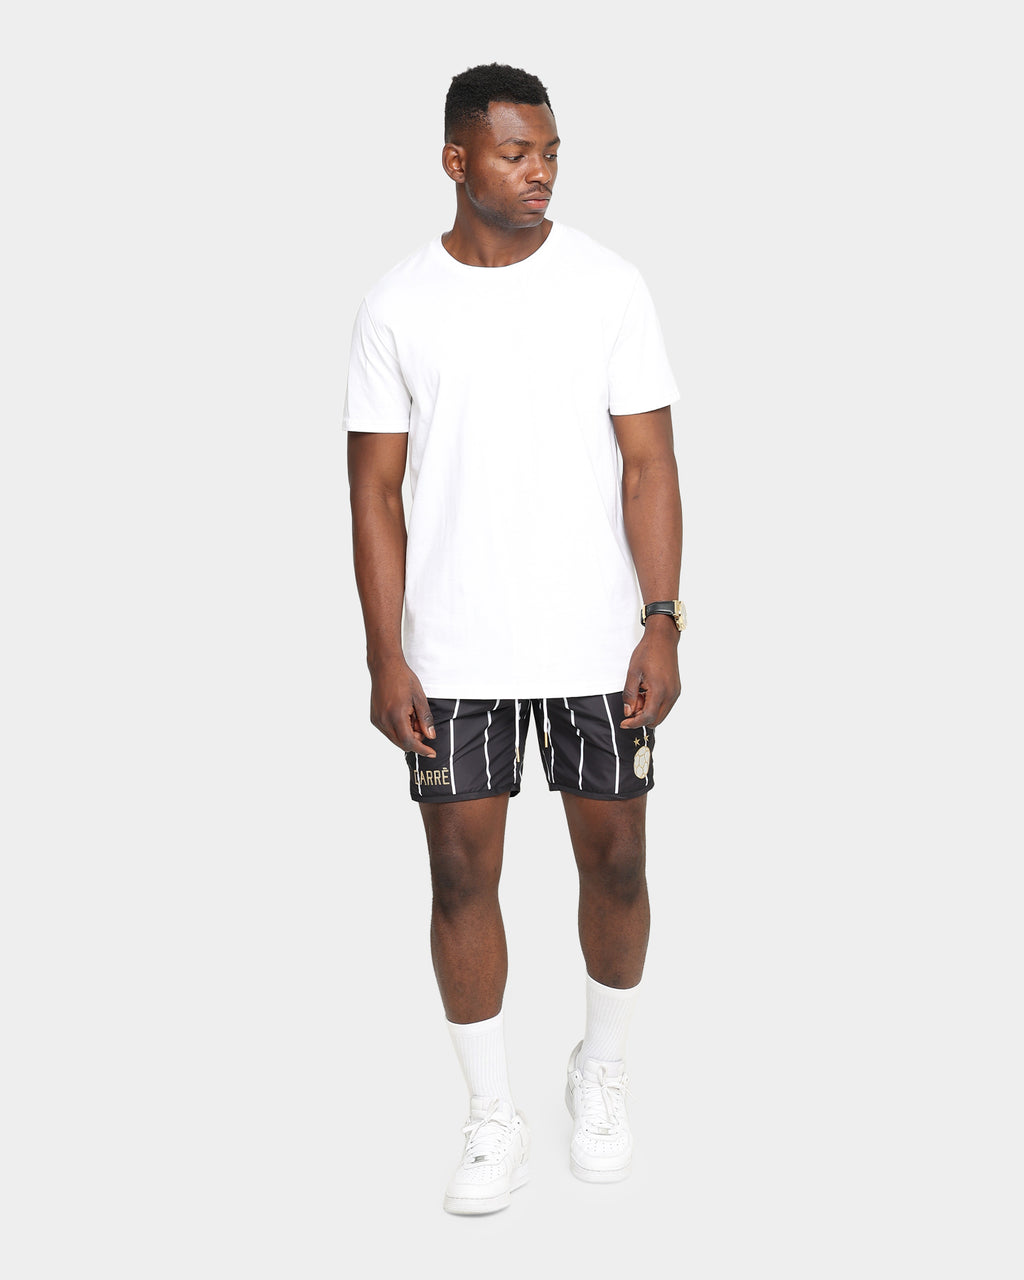 Carré Men's Deux Pinstripe Shorts Black/White